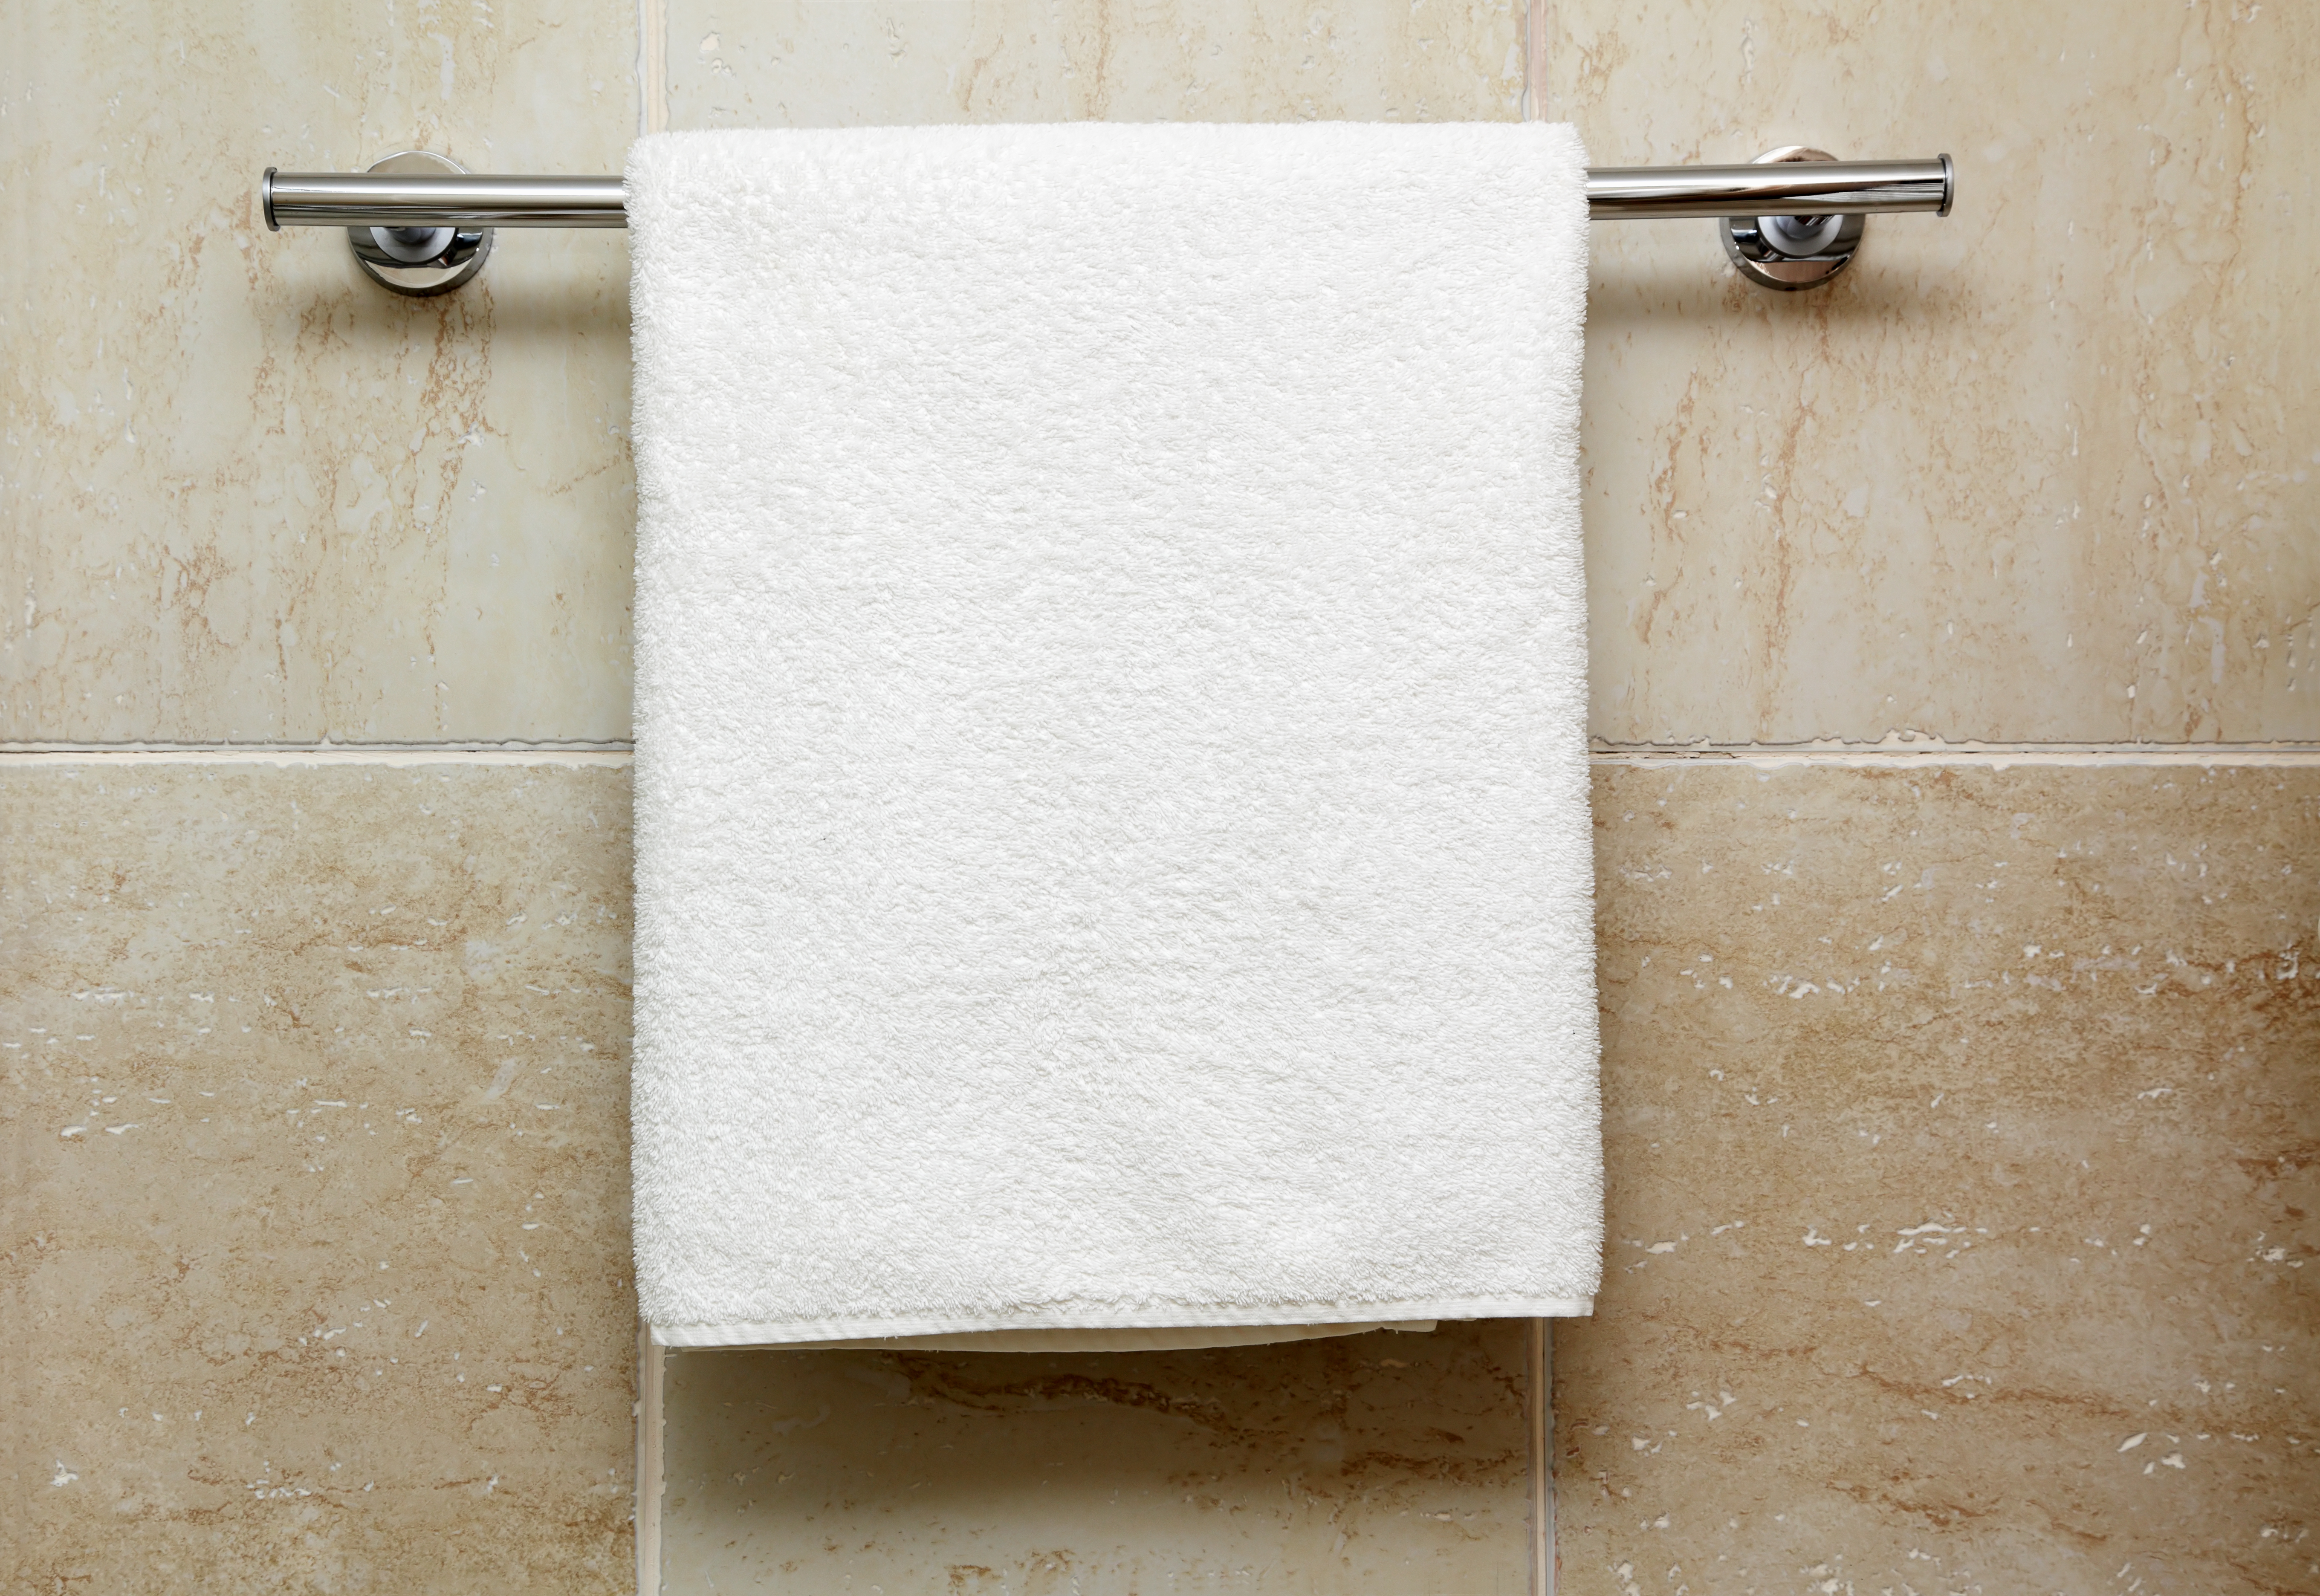 What Size Towel Bar Should I Use For My Bathroom Hunker